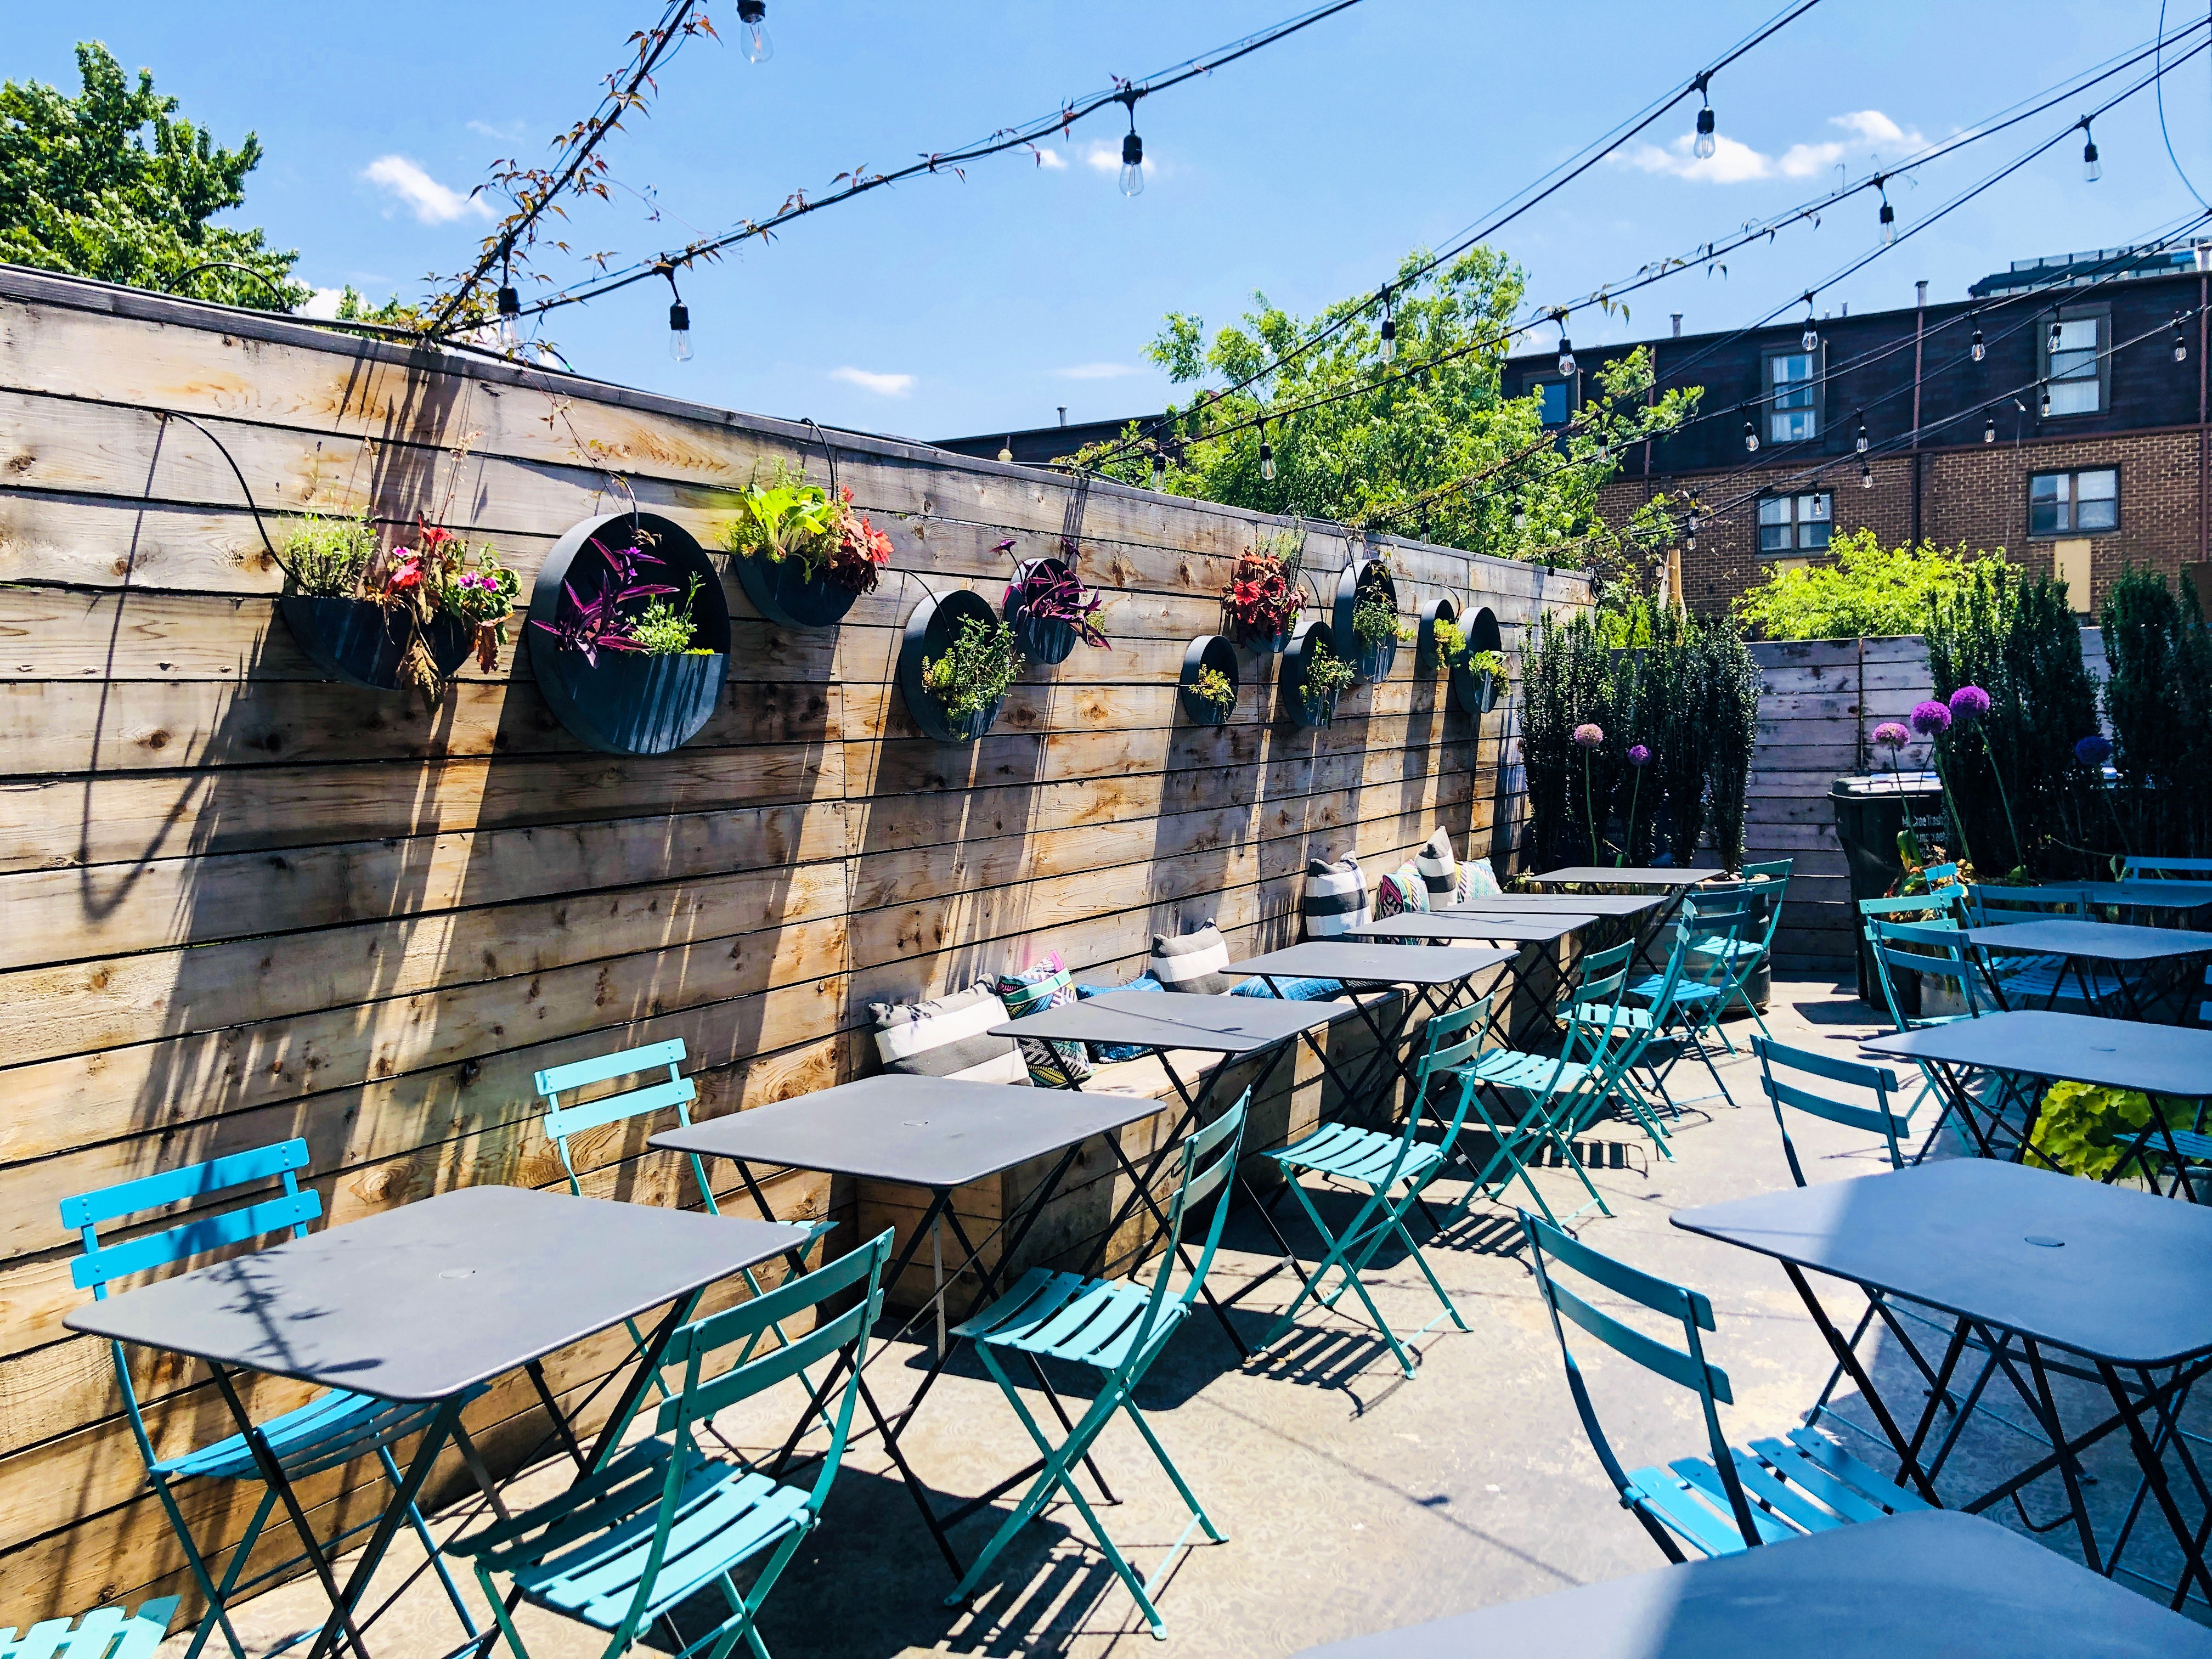 The Best New Rooftop Bars And Beer Gardens In D C The